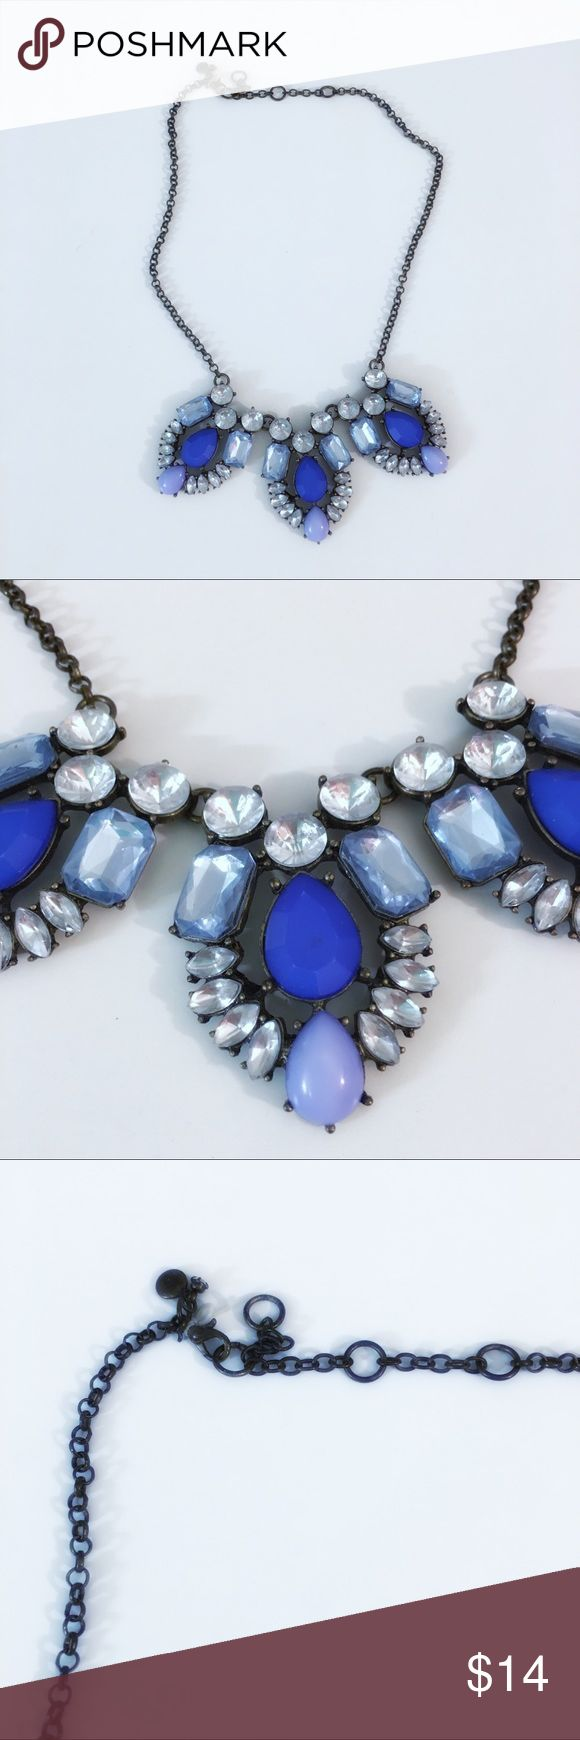 Francescas Collections Sapphire Statement Necklace Francesca's Collections Sapphire Blue Statement Necklace - New but no tag (was missing at time of purchase—see elastic that held the former tag in pictures) Francesca's Collections Jewelry Necklaces